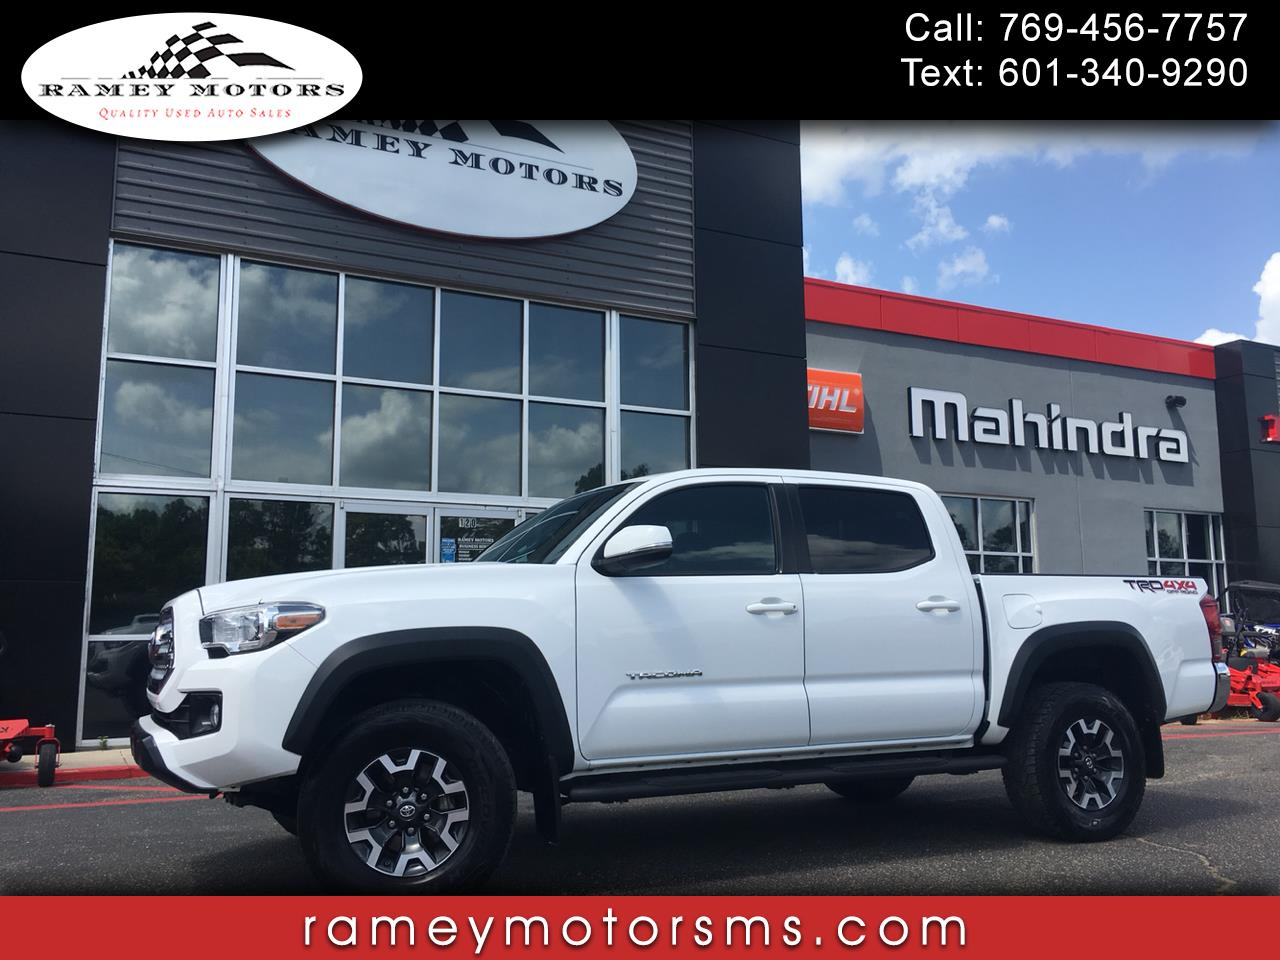 2016 Toyota Tacoma 4WD DOUBLE CAB TRD OFFROAD